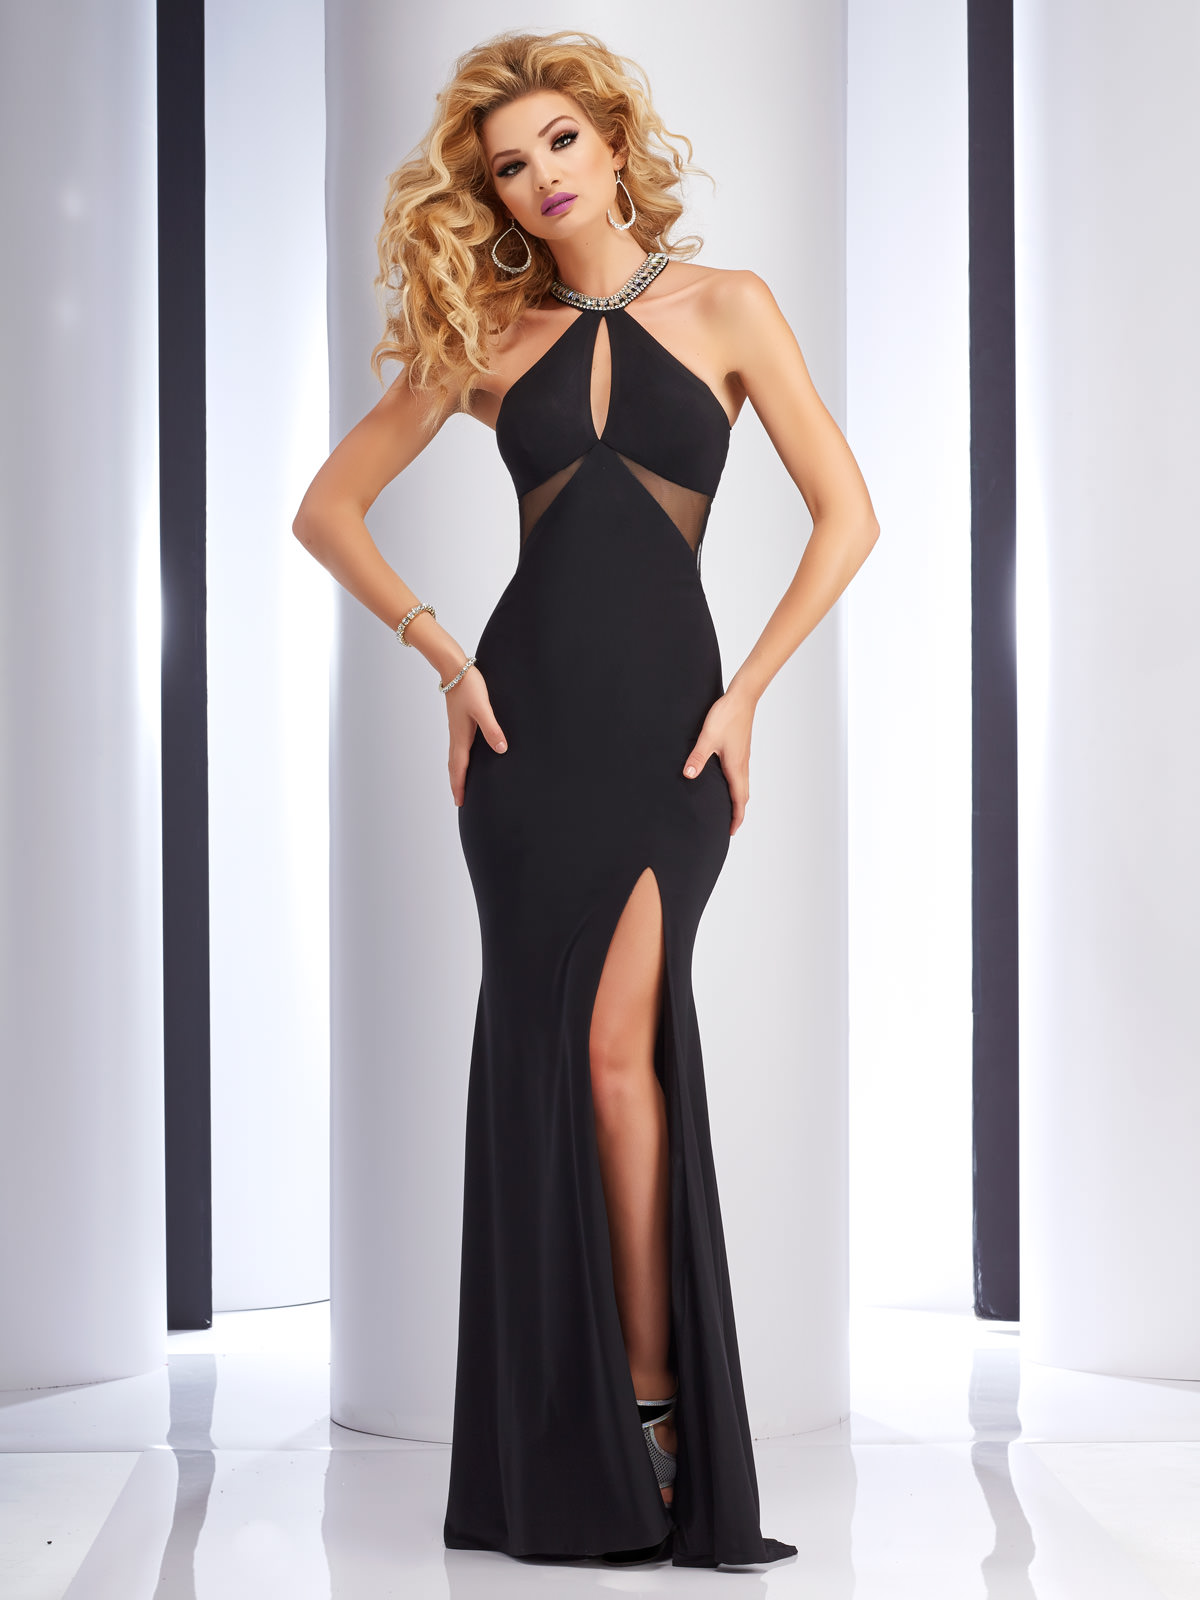 Clarisse 2710 Prom Dress | Promgirl.net